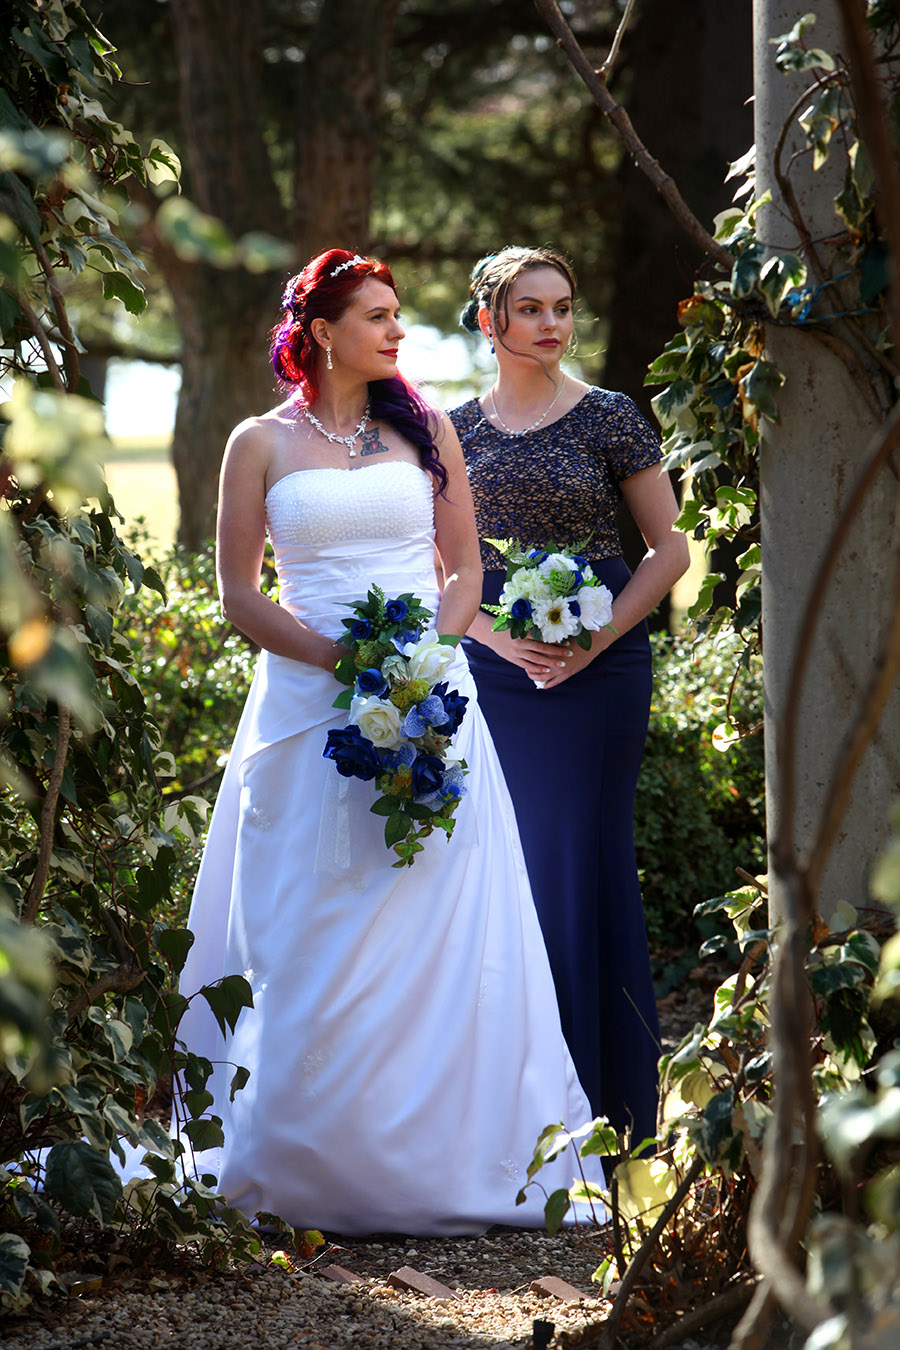 Beautiful black and white bridal gown photographer. Murwillumbah based photographer covering wedding in ACT Canberra, mother and daugter bridesmaid, flowers